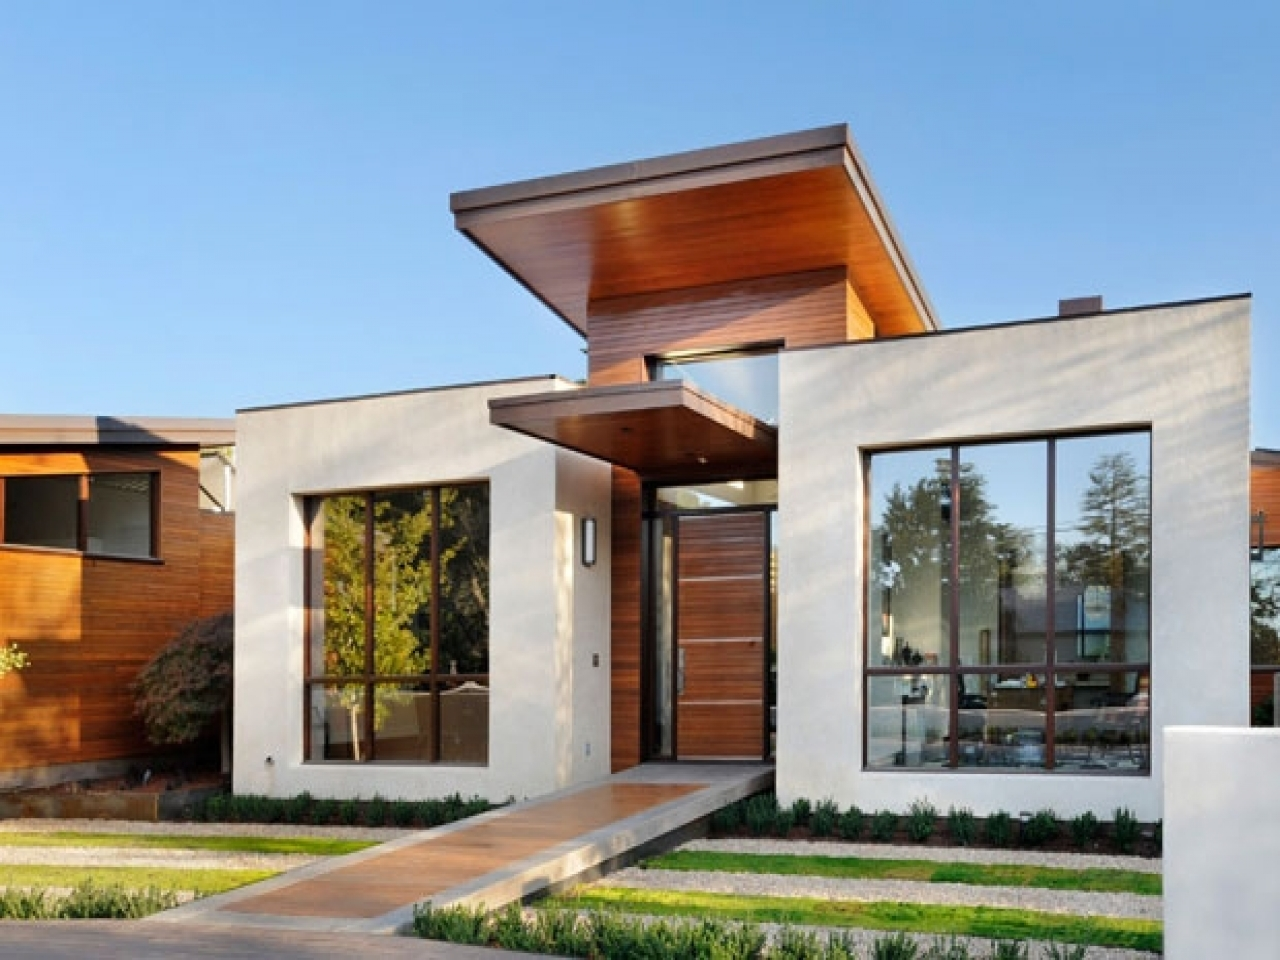 Small modern house exterior design ultra modern small for Super modern house design